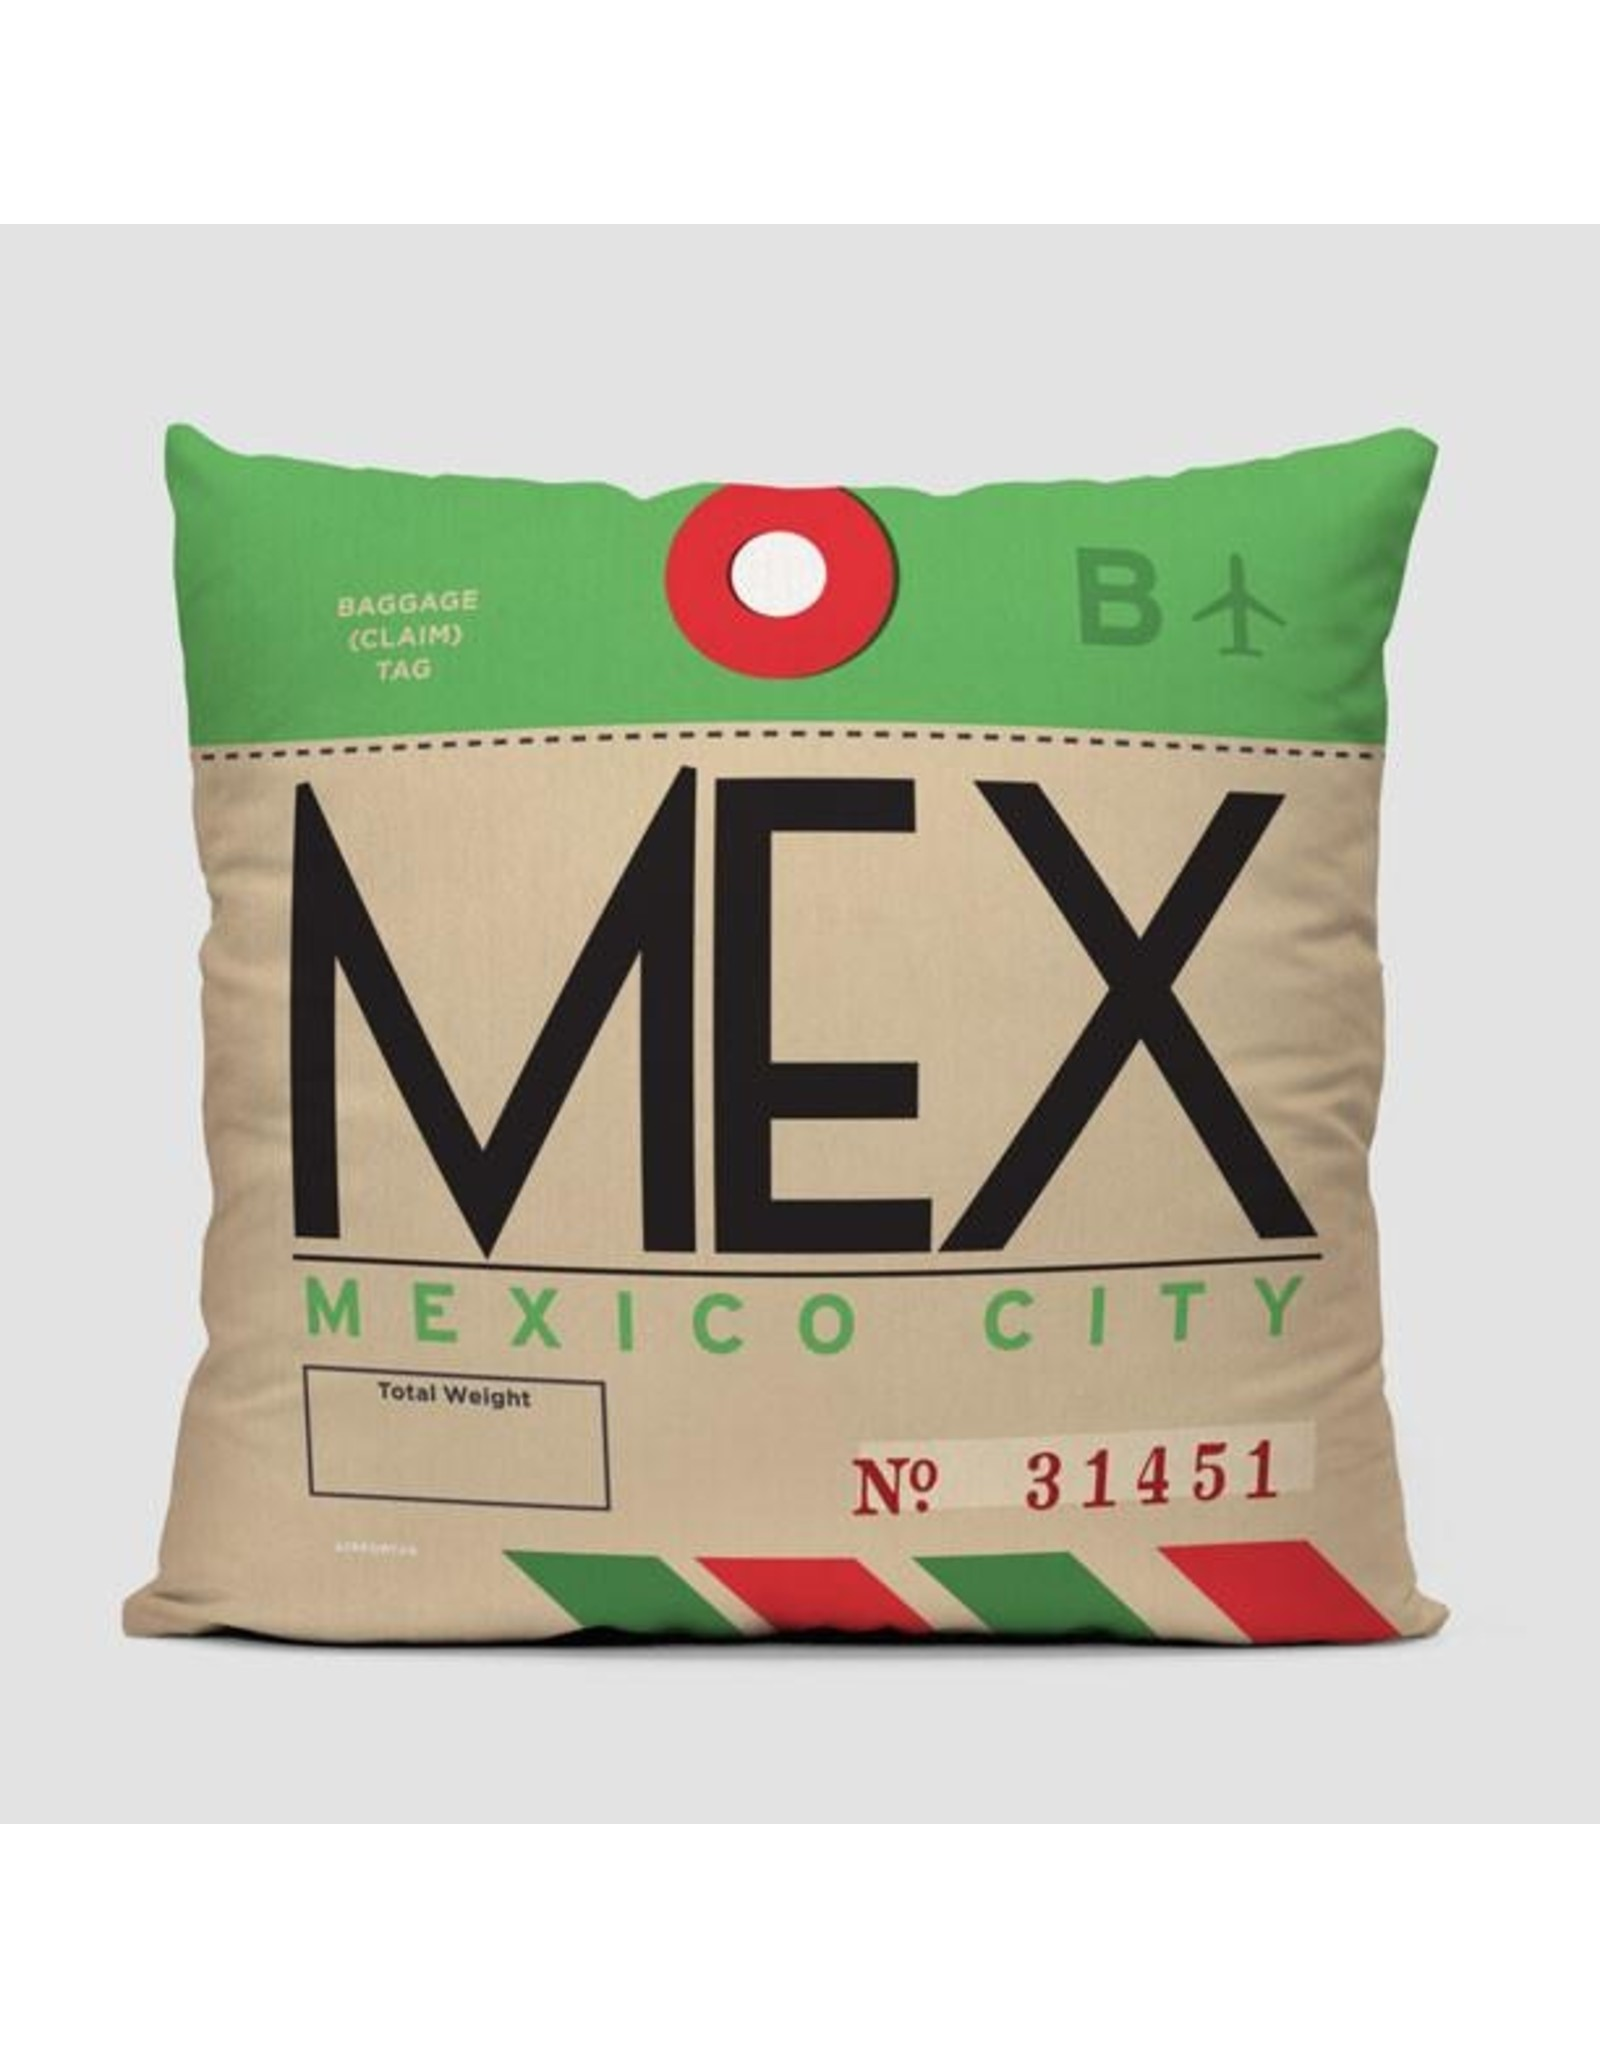 Pillow MEX Mexico City 16""